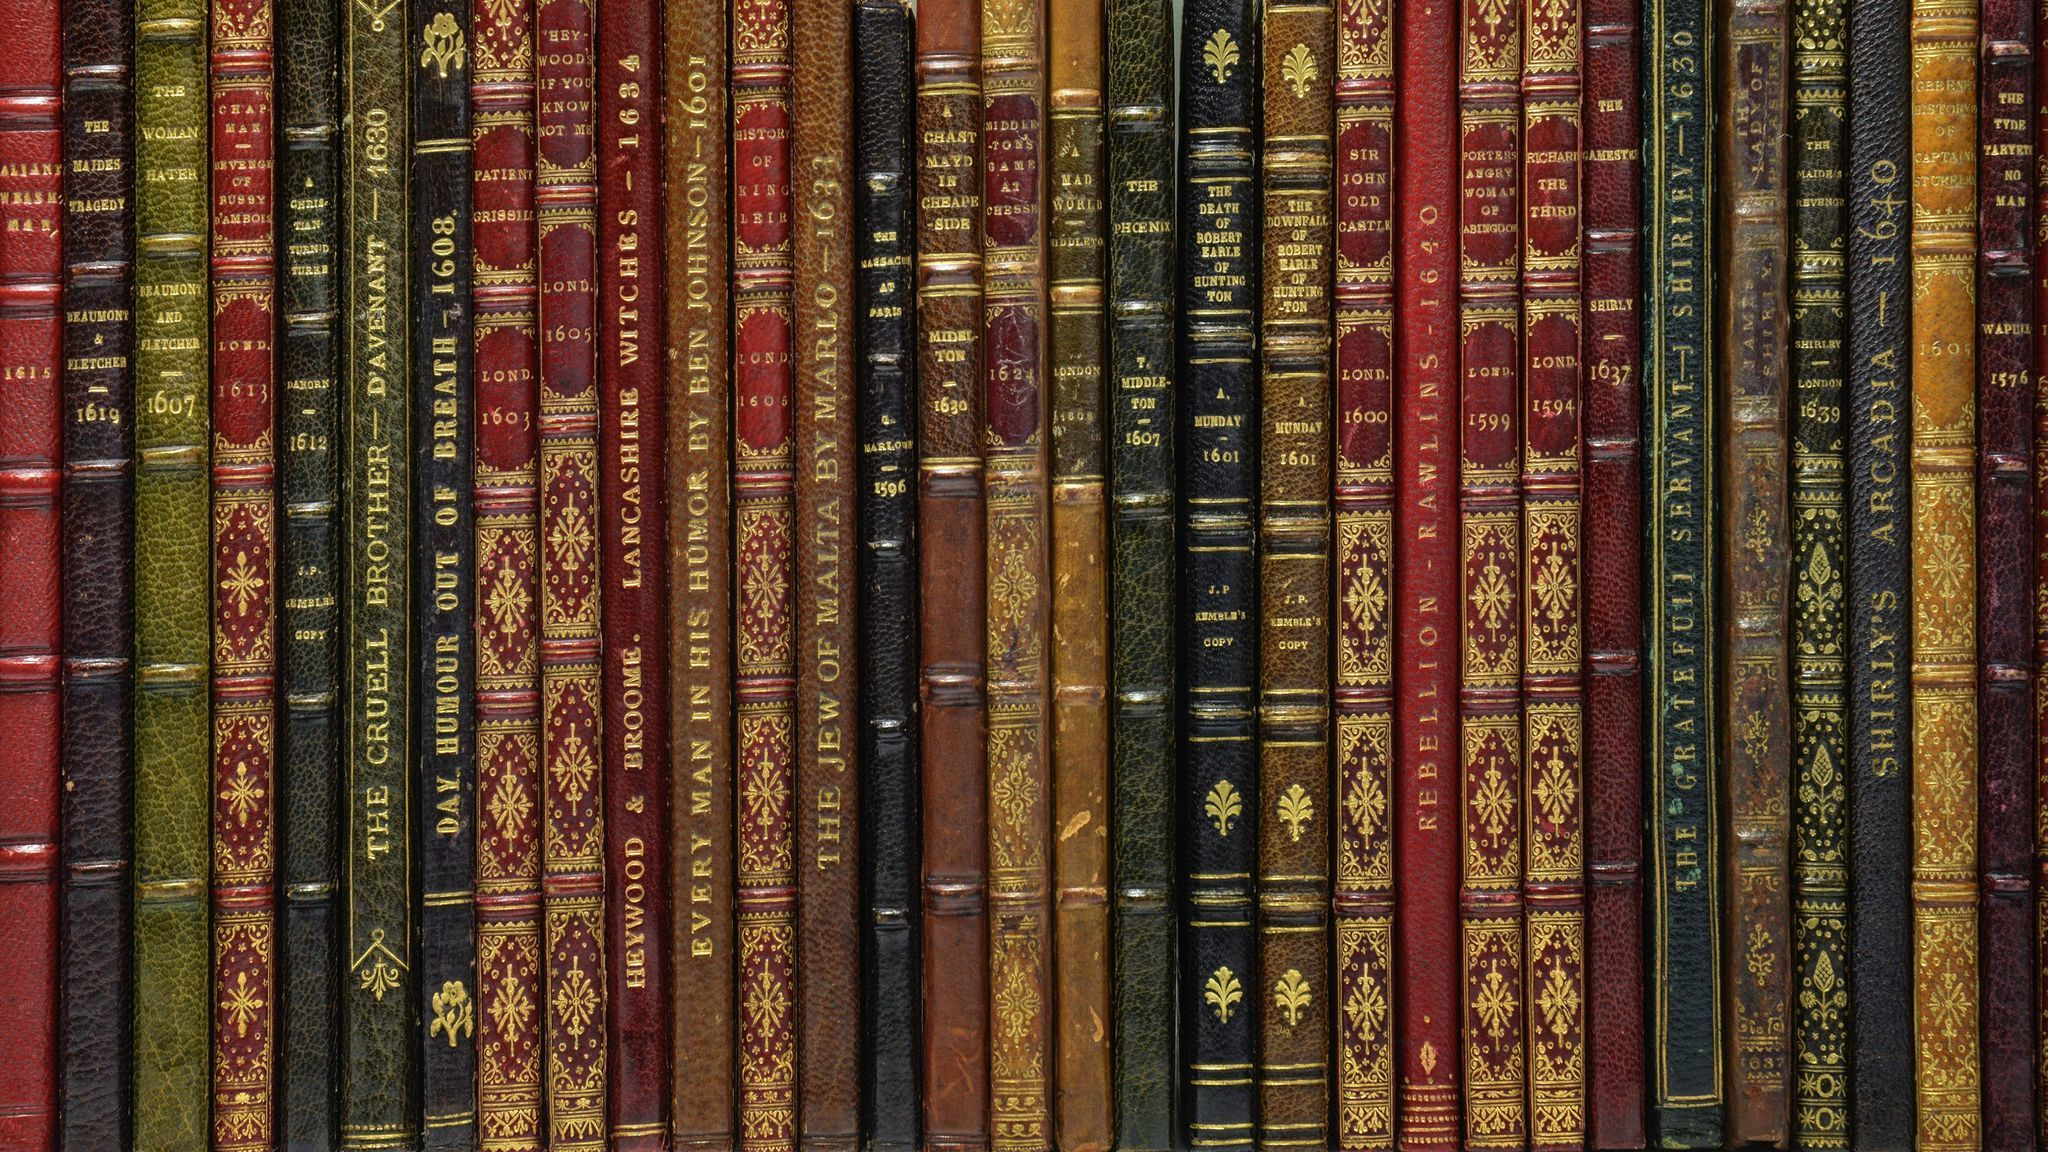 Digital technology is bringing the printed pages from centuries ago to literary fans' fingertips.